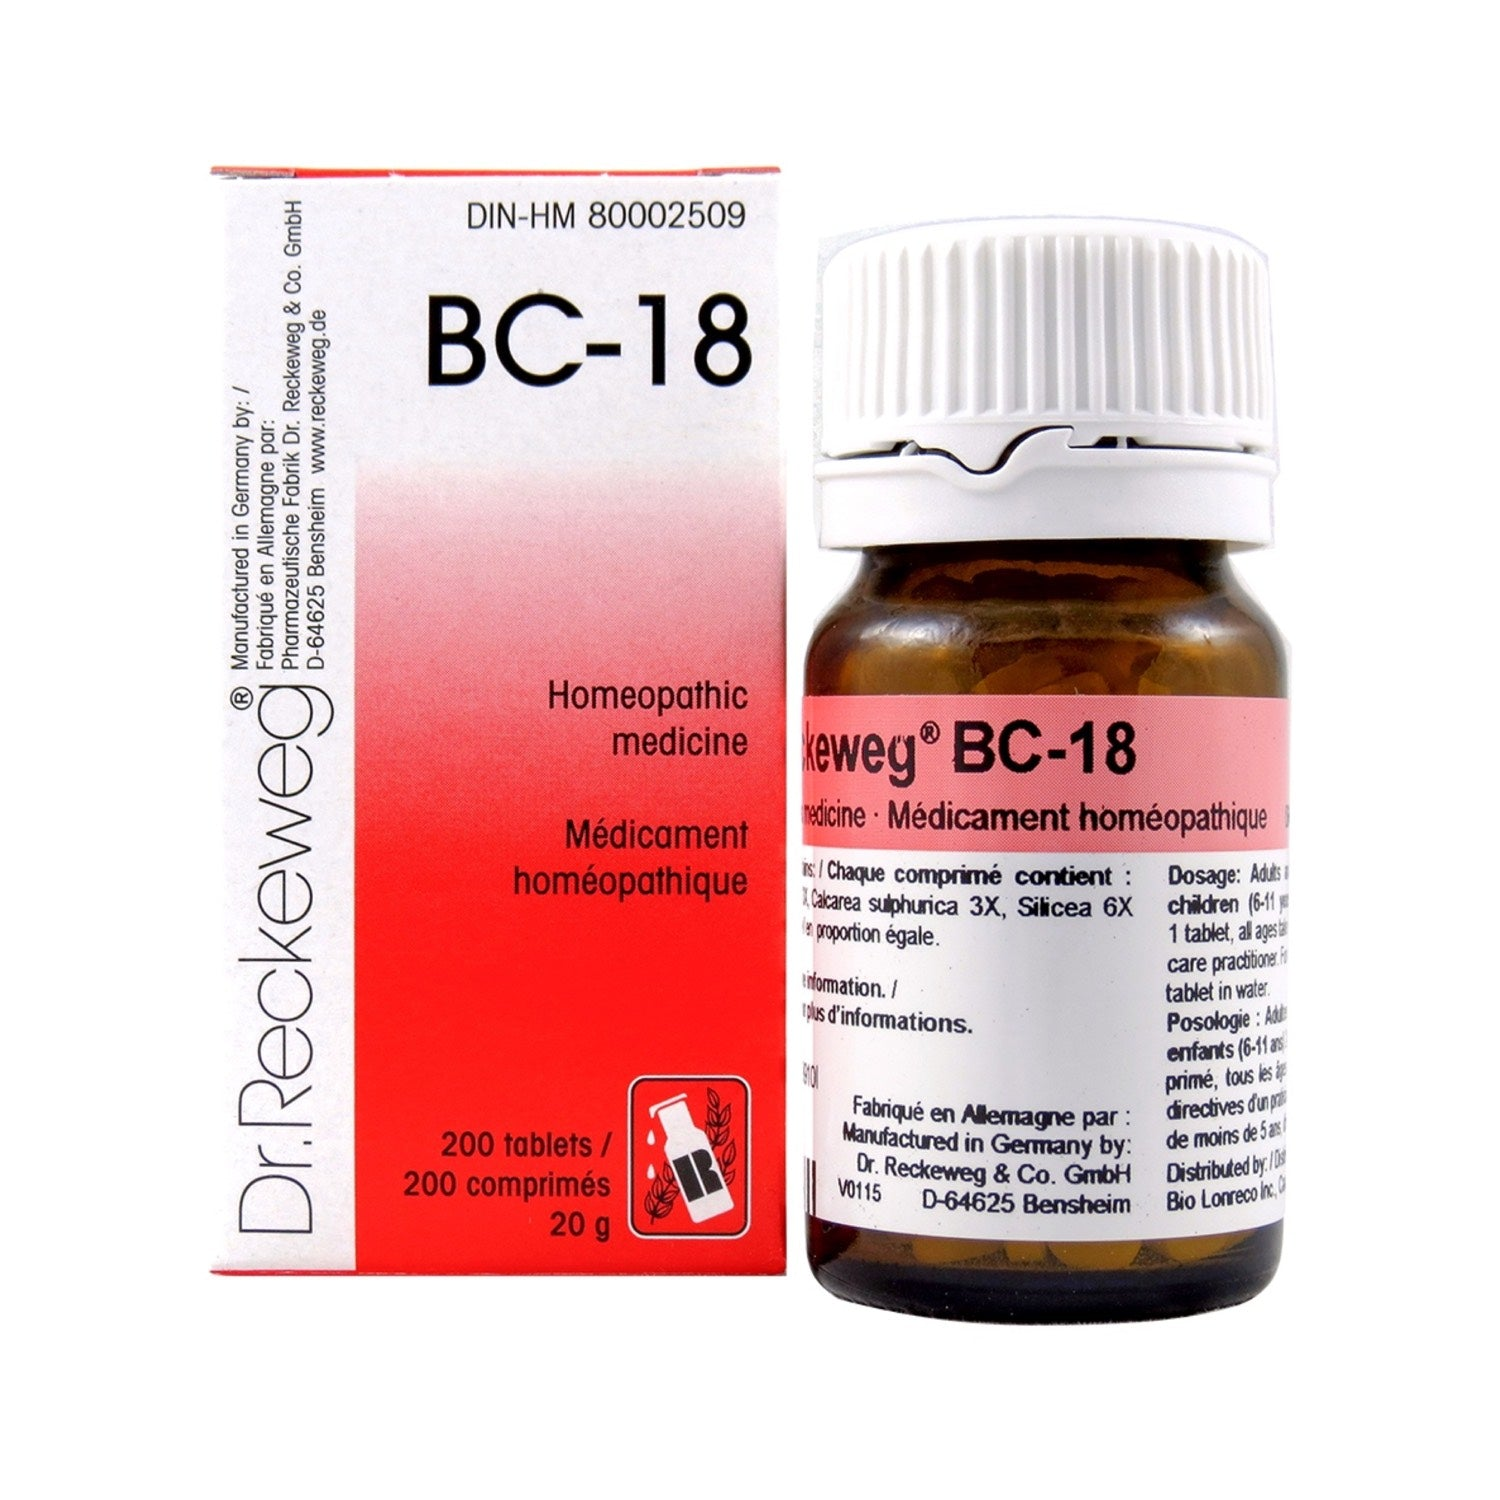 BC-18 Homeopathic medicine – Combination salt  200 tablets (20 g)